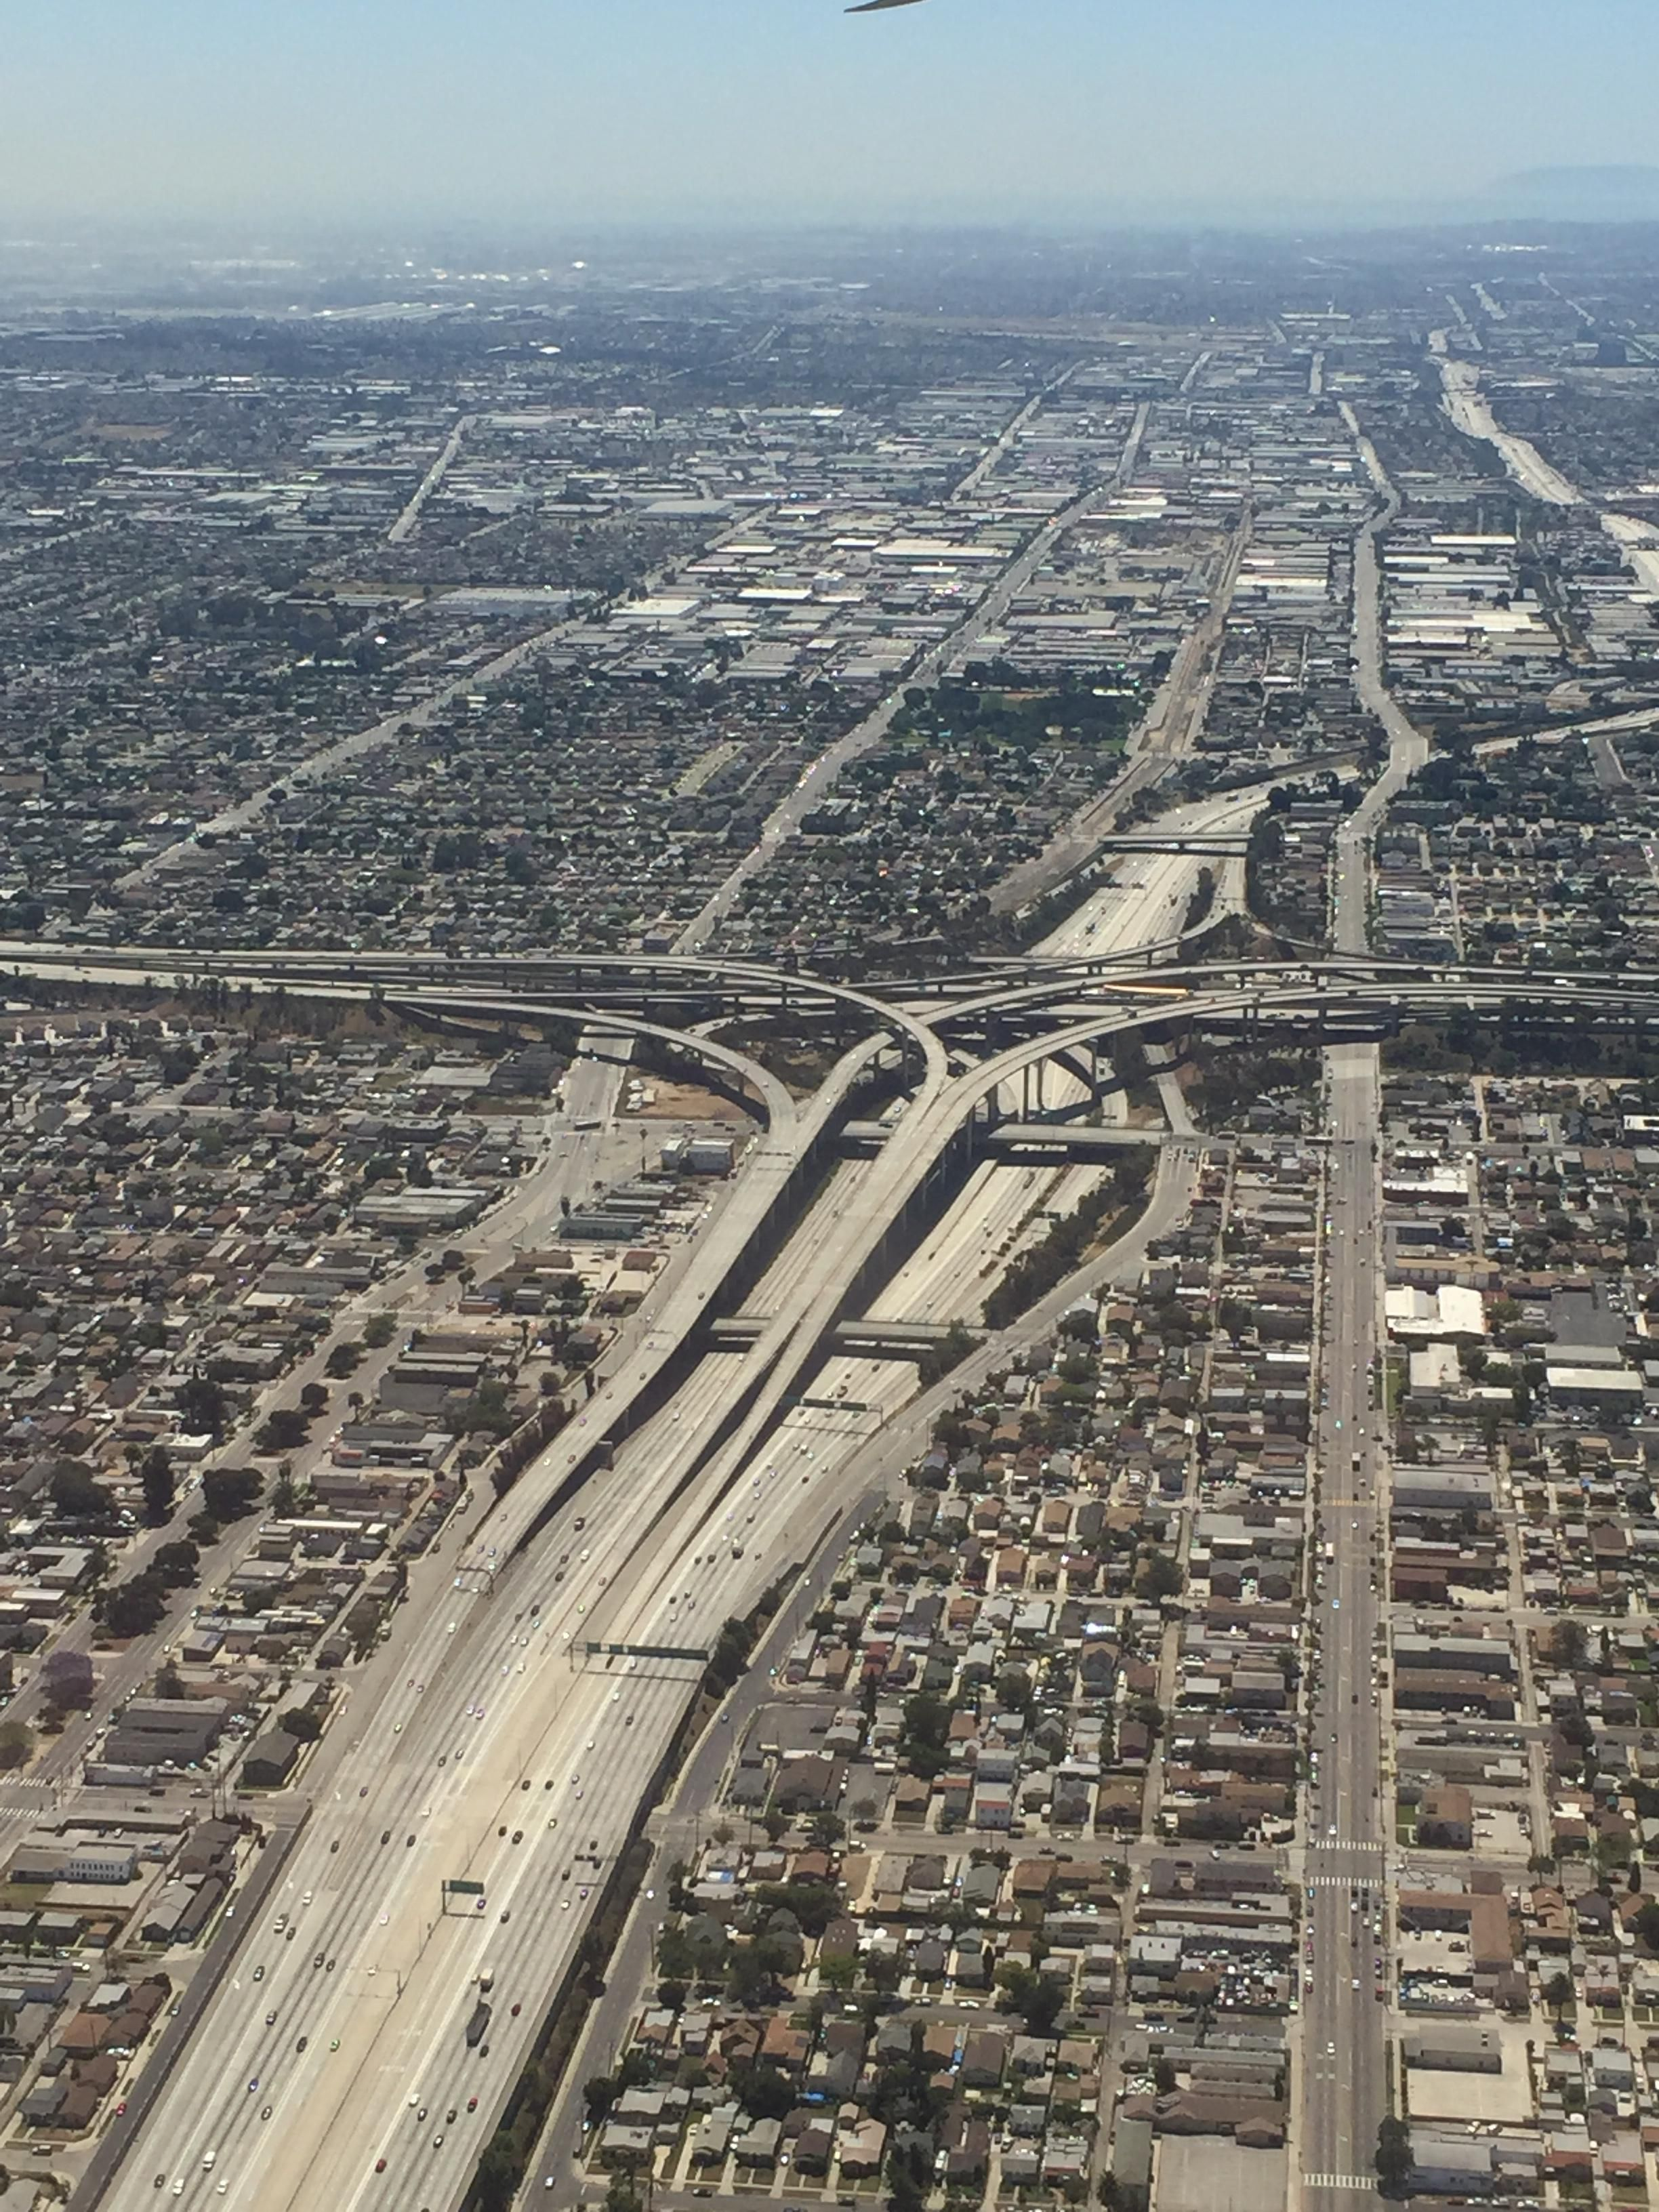 Los Angeles Looking South Over The 110 105 Interchange 2448x3254 Oc R Cityporn Los Angeles City Pictures Usa Cities